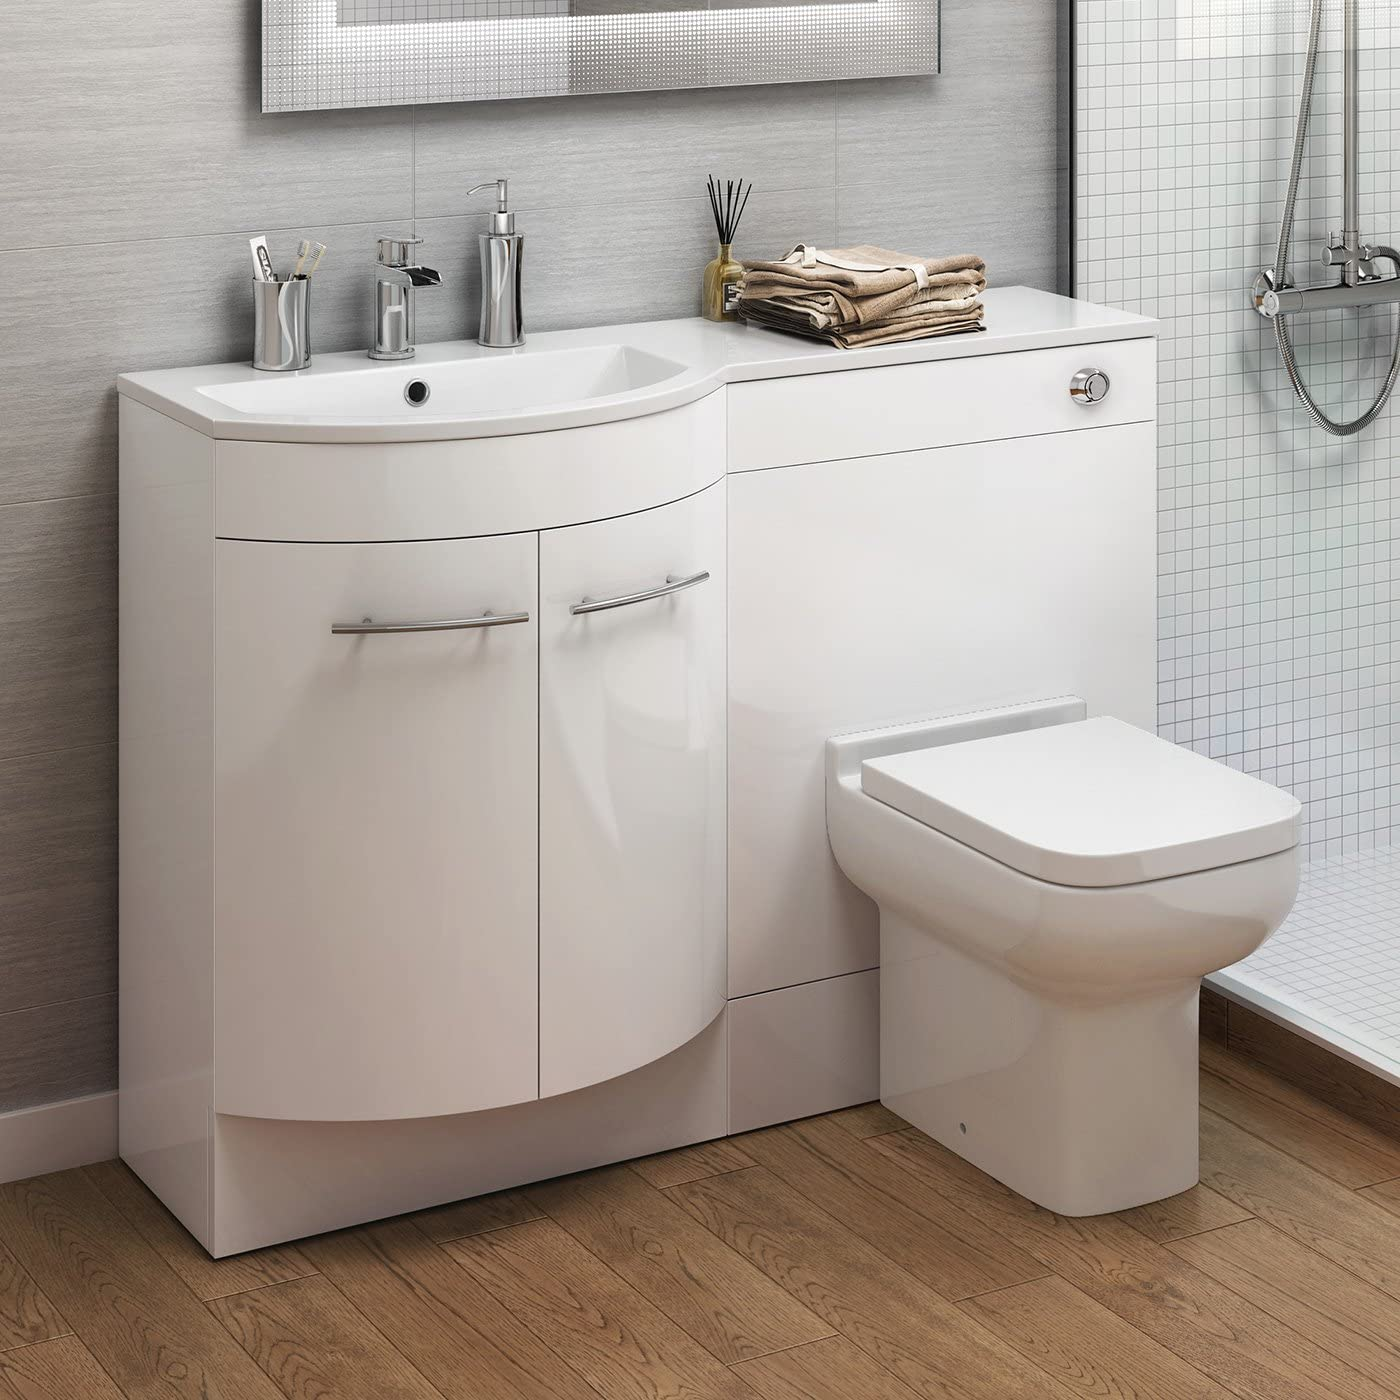 White Vanity Basin Unit Short Projection Back to Wall Toilet